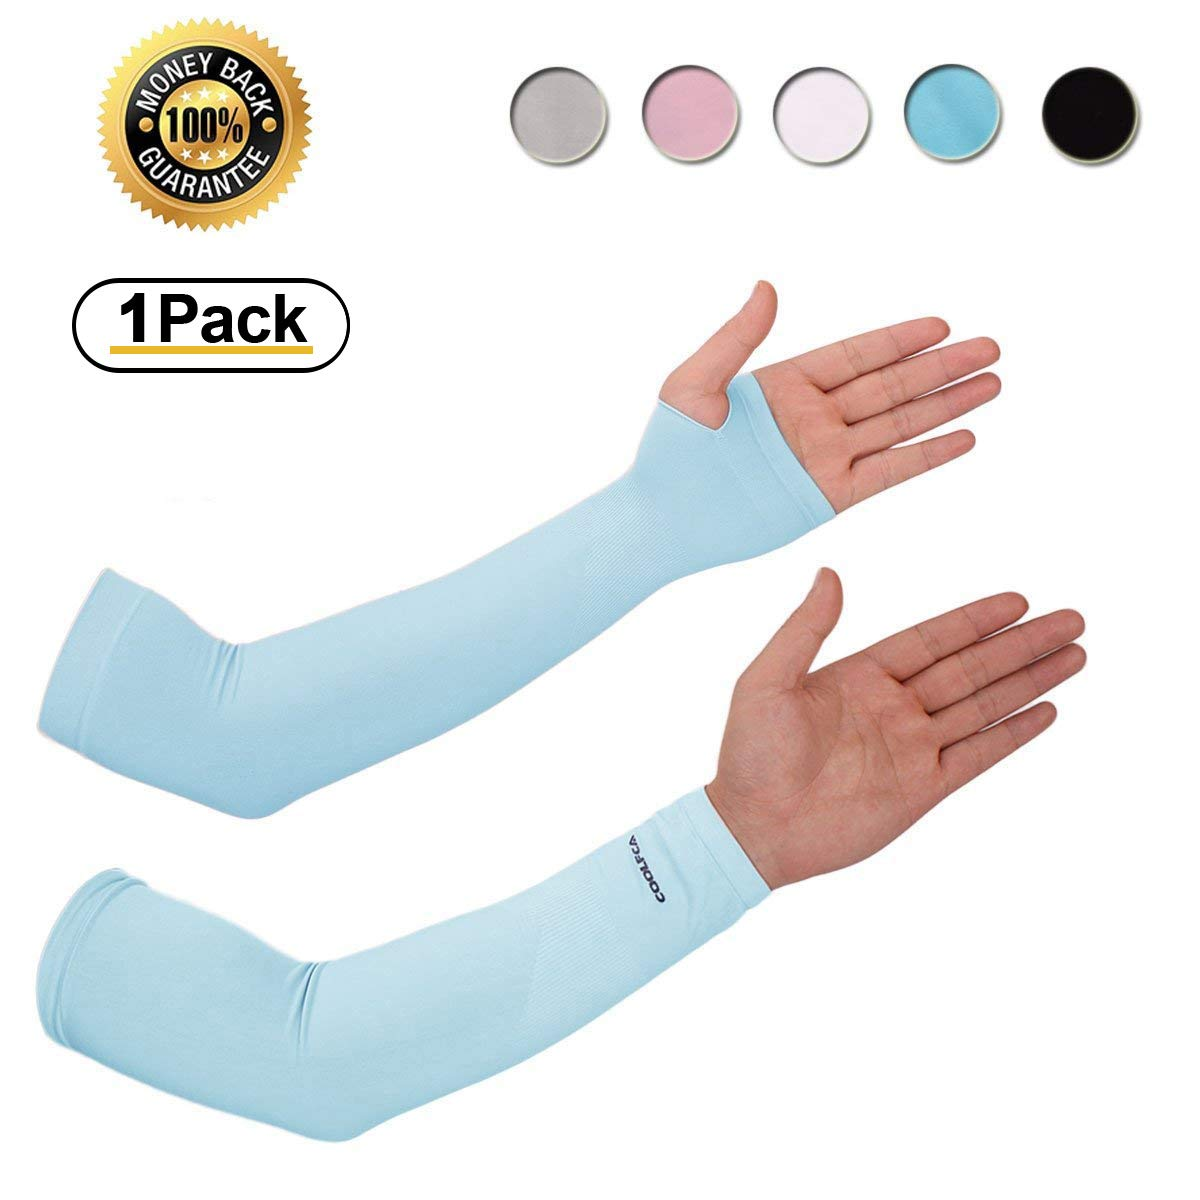 b73d6c8794 Achiou Arm Sun Sleeves UV Protection Cooling for Men Women Sunblock Cooler  Protective Outdoor Sports Running